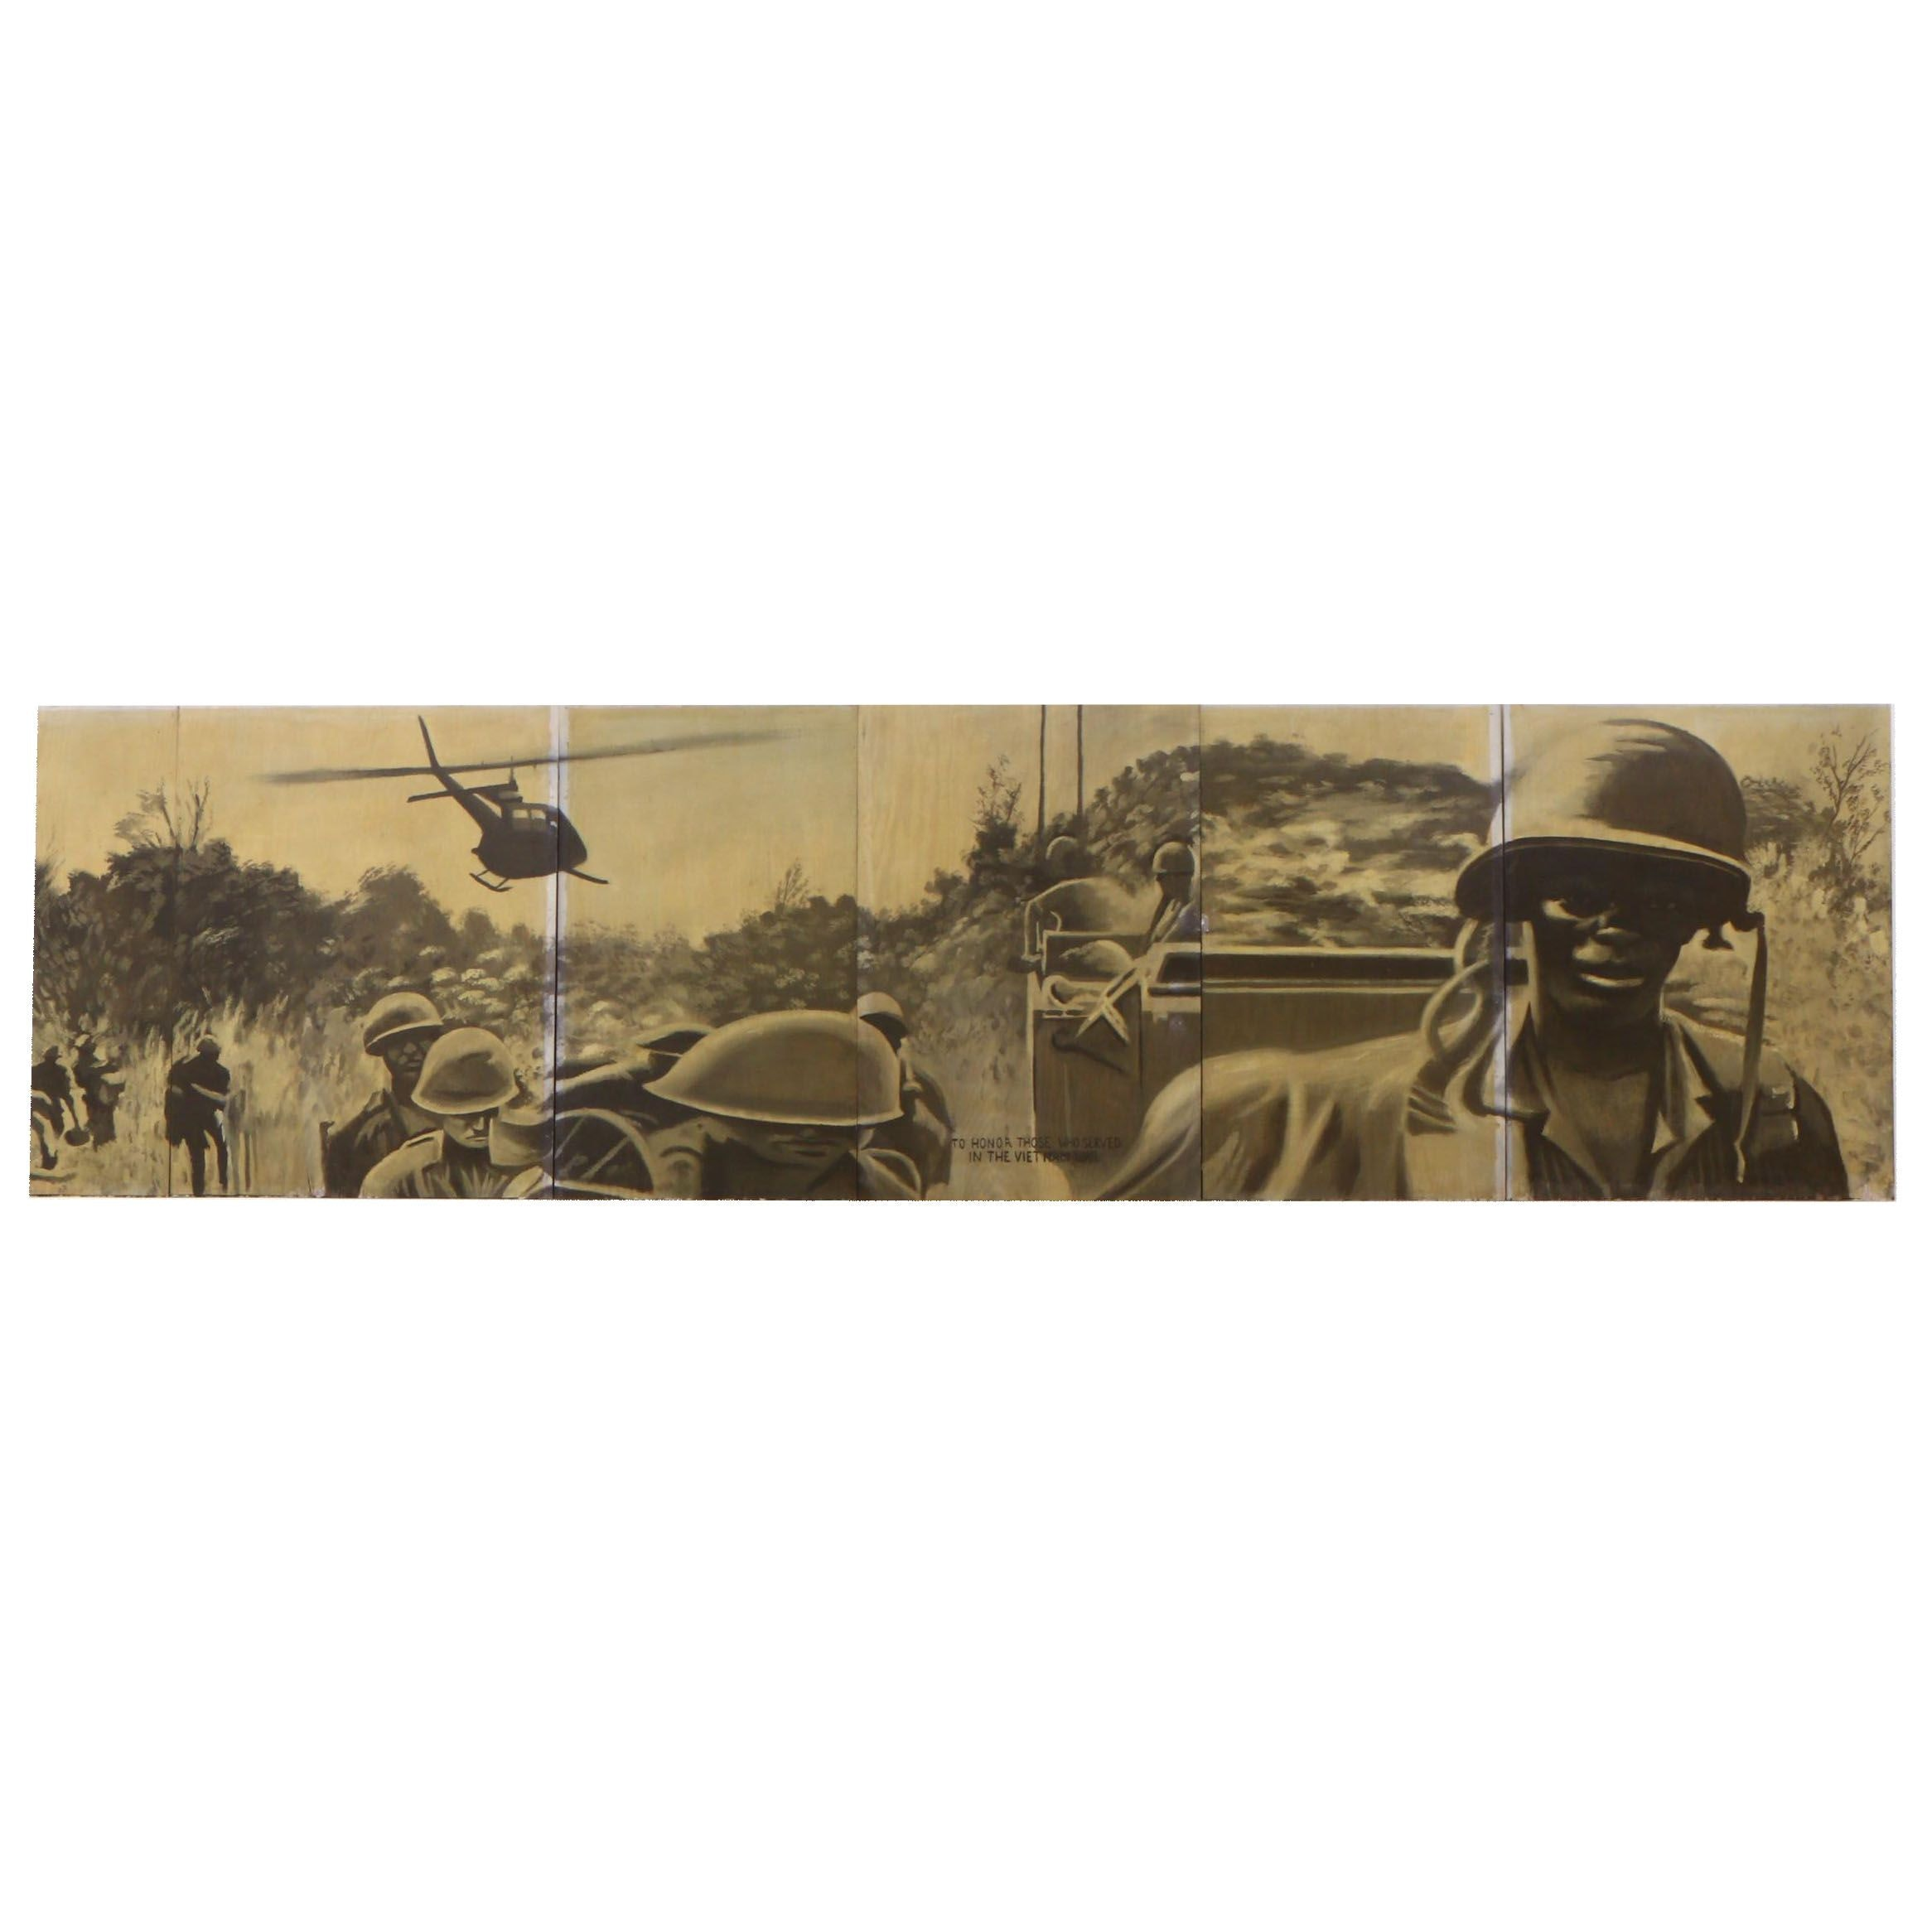 Greg Storer Multi-Panel Vietnam War Themed Mural Painting